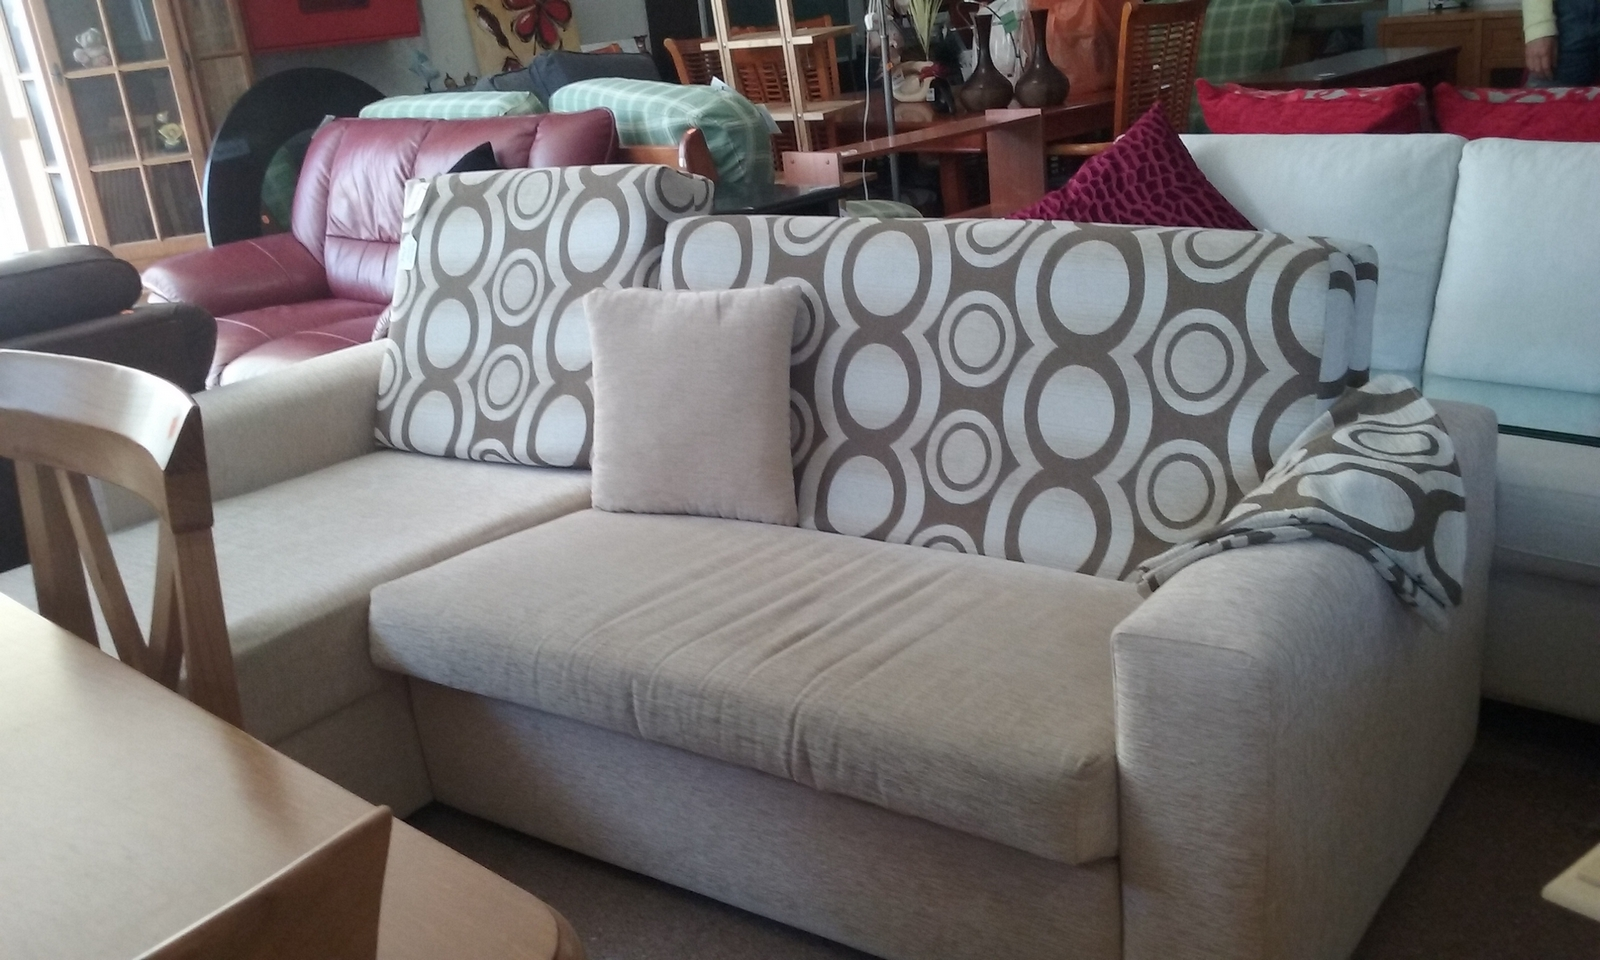 Bedroom Furniture Second Hand Luxurius Second Hand Living Room Furniture For Sale Sac14 Da